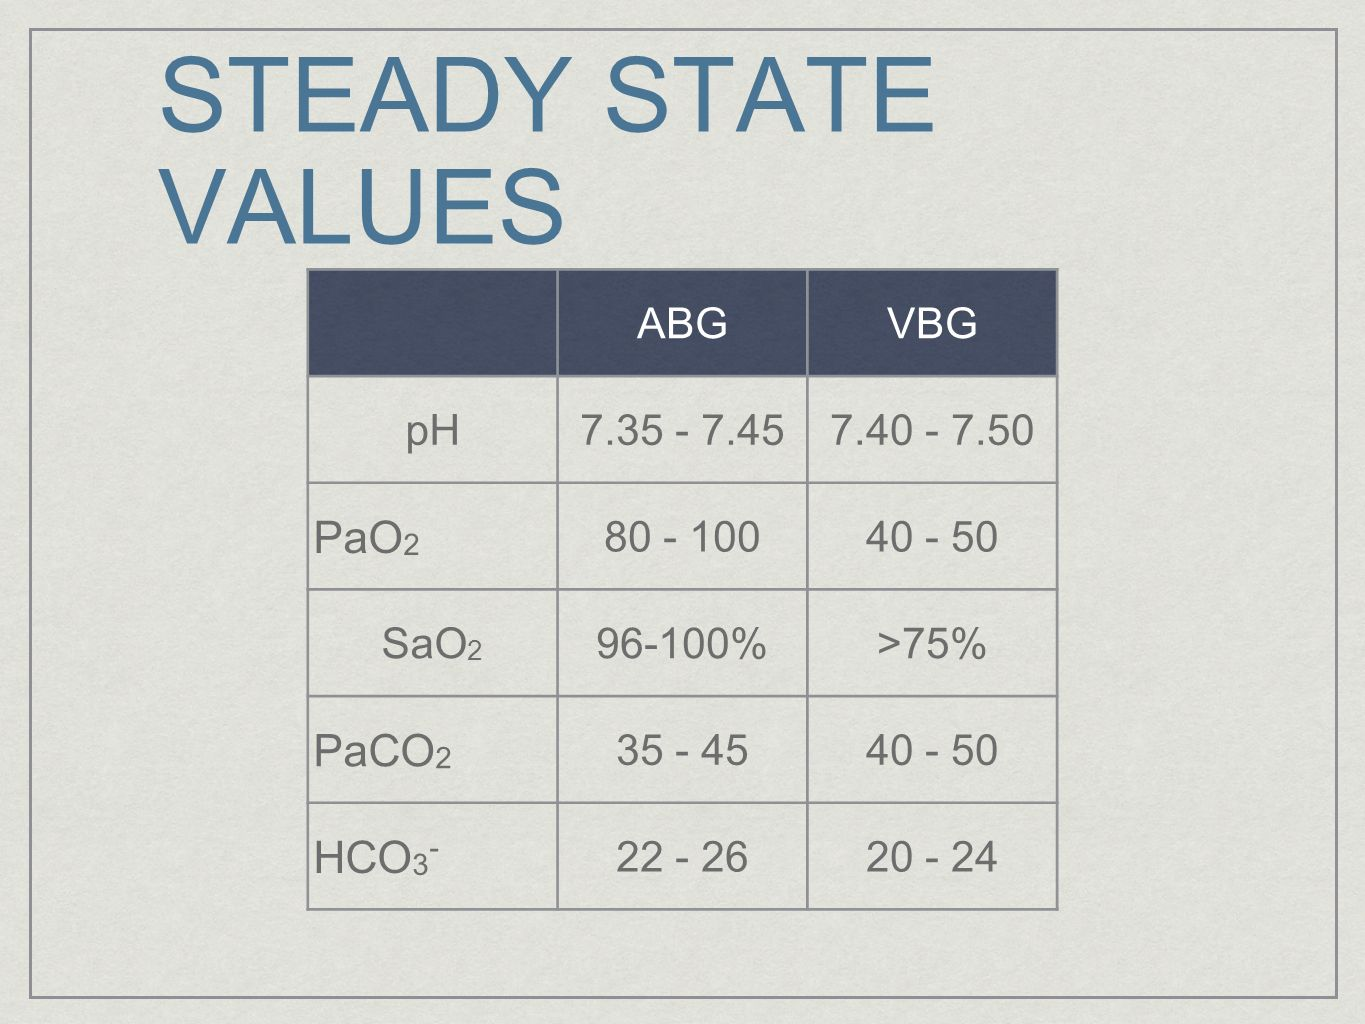 STEADY STATE VALUES PaO2 PaCO2 HCO3- ABG VBG pH 7.35 - 7.45